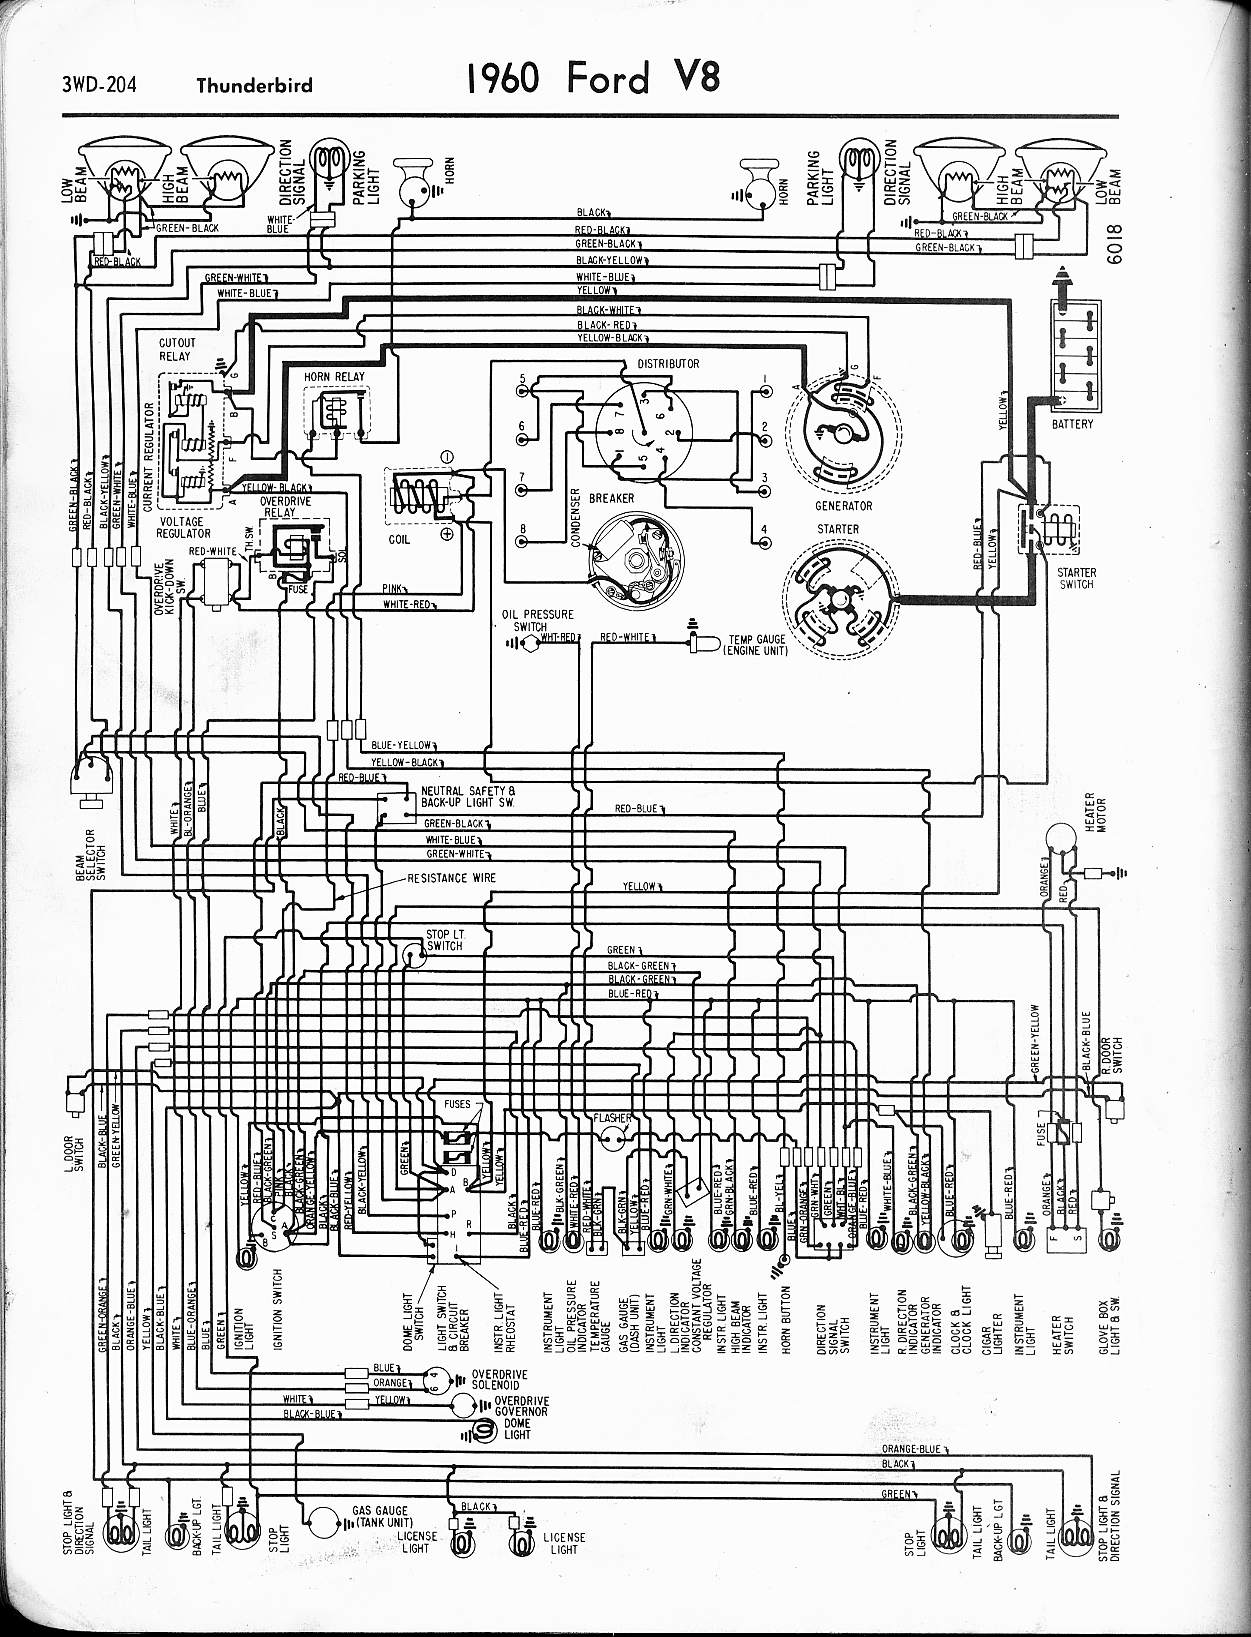 MWire5765 204 57 65 ford wiring diagrams 1955 thunderbird wiring diagram at gsmx.co